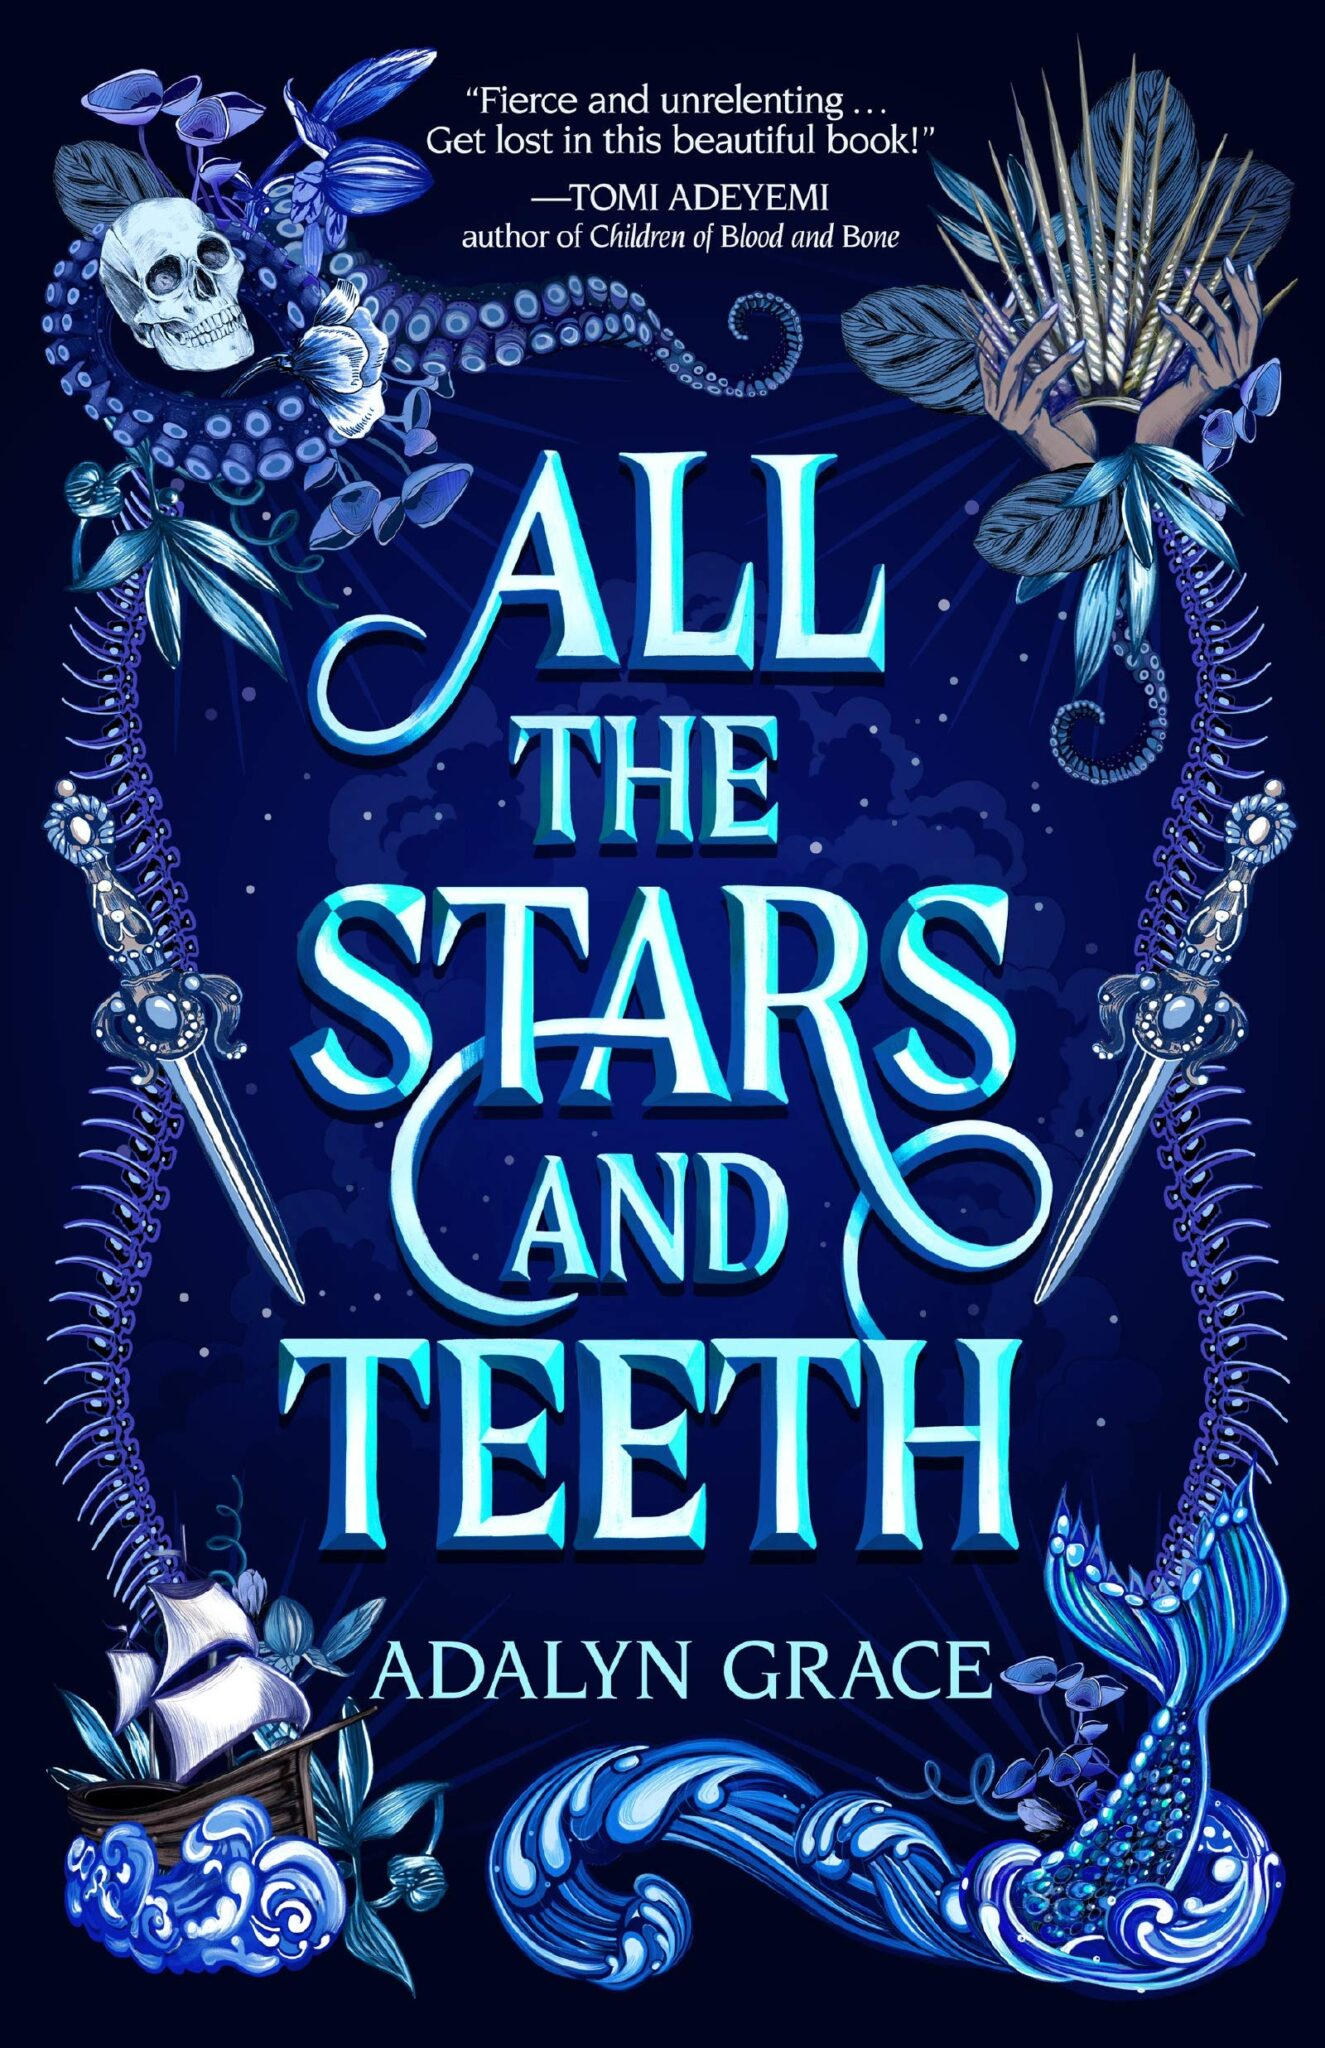 adalyn grace all the stars and teeth